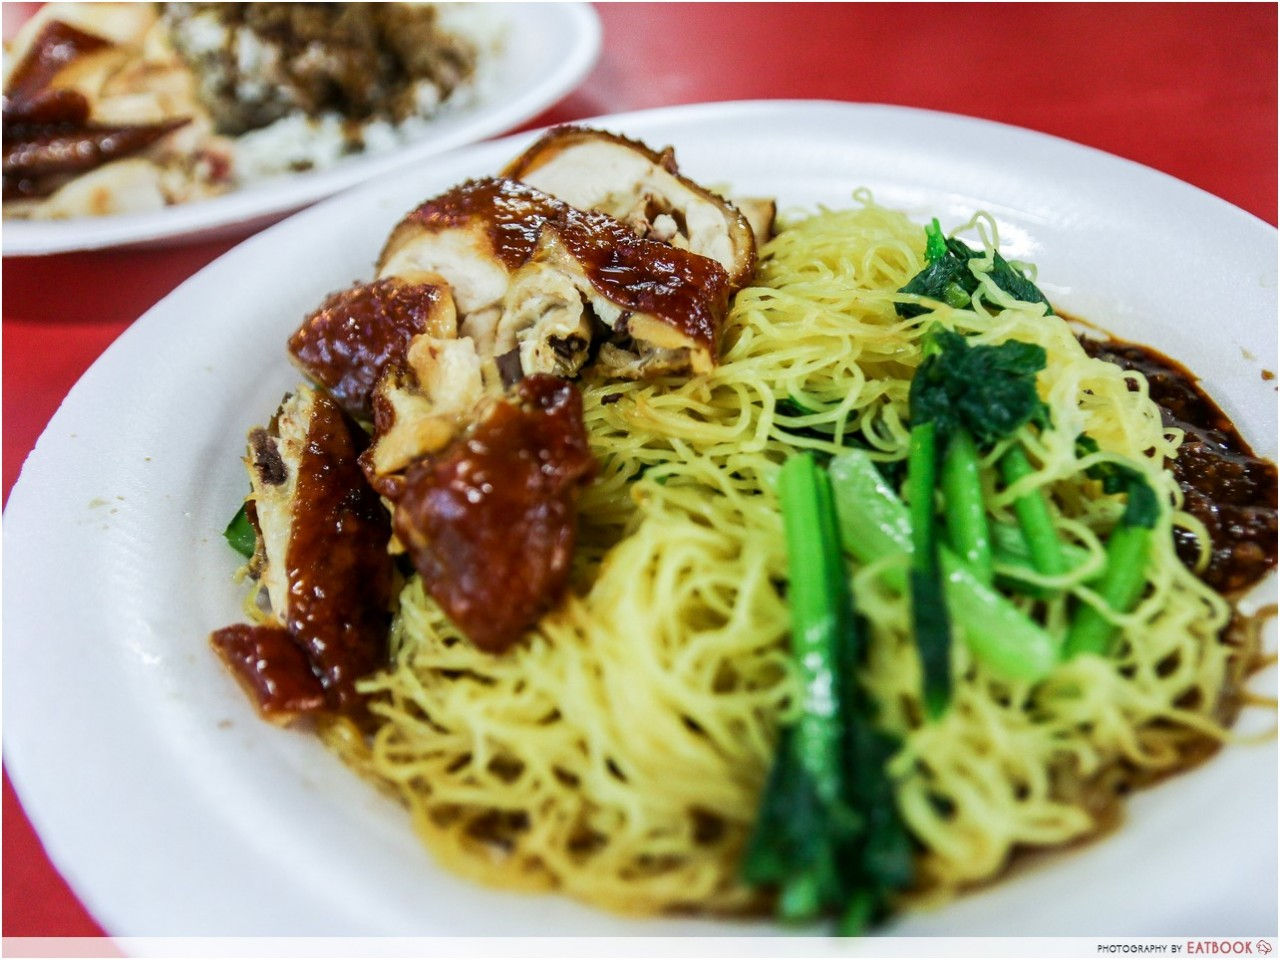 Liao Fan Hong Kong Soya Sauce Chicken Rice and Noodle